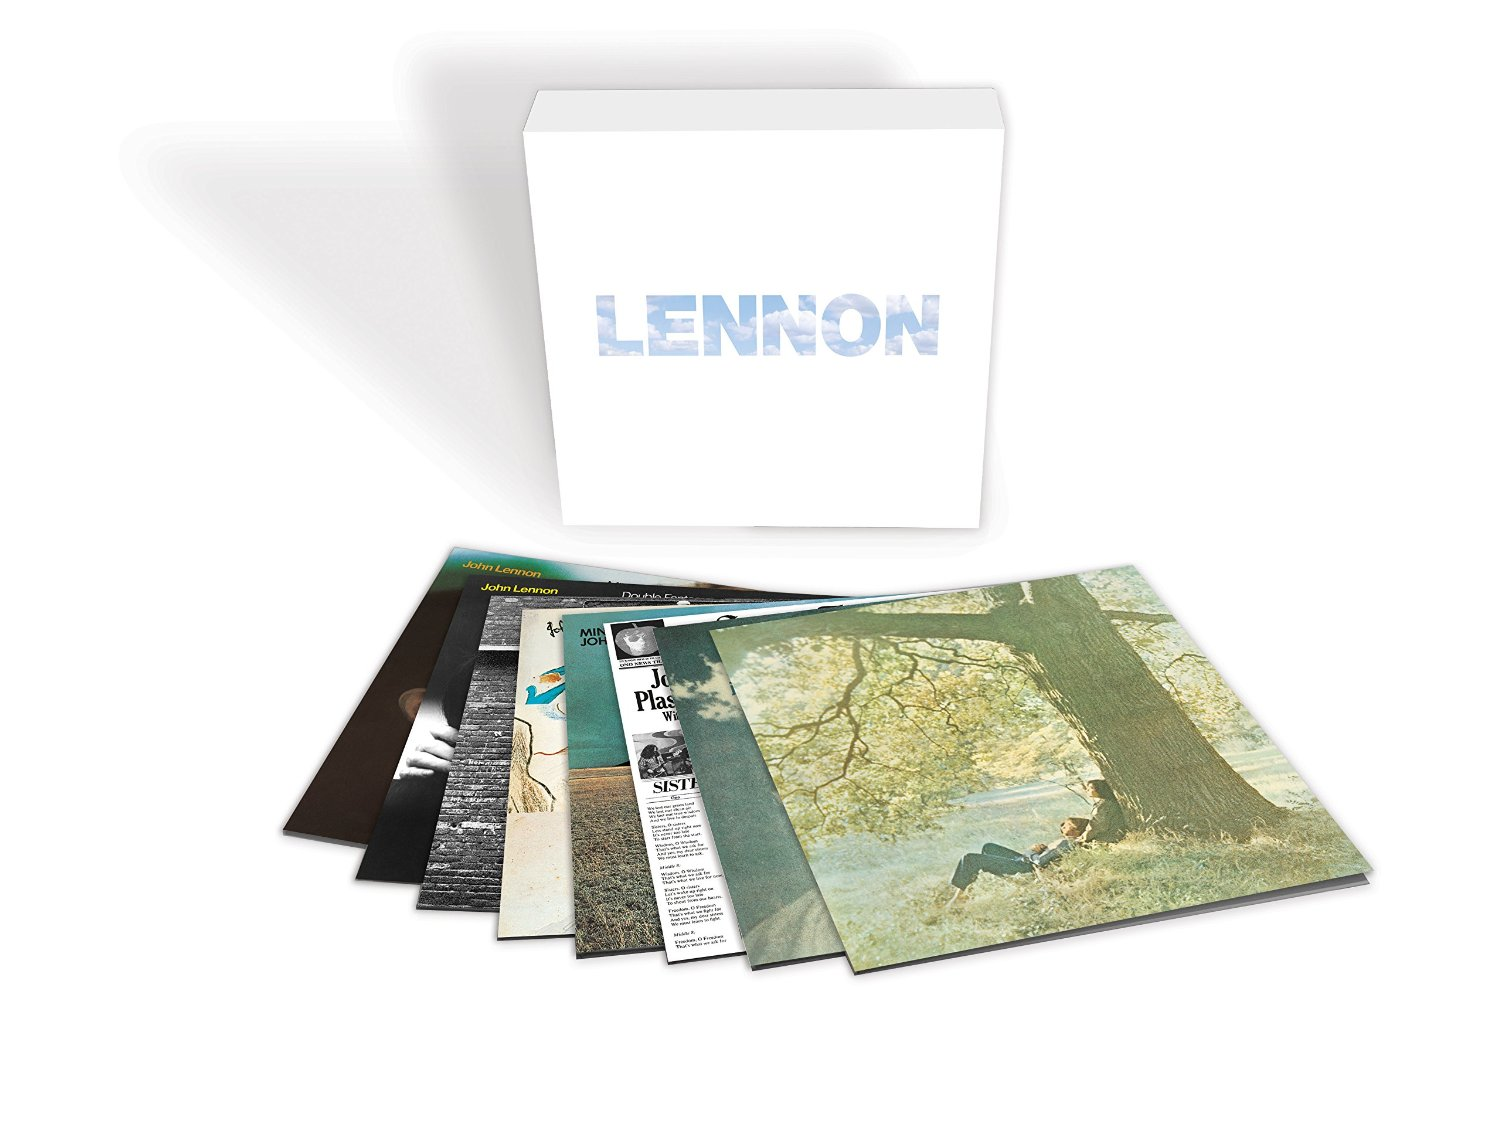 Lennon - 8 LP Signature Box Set